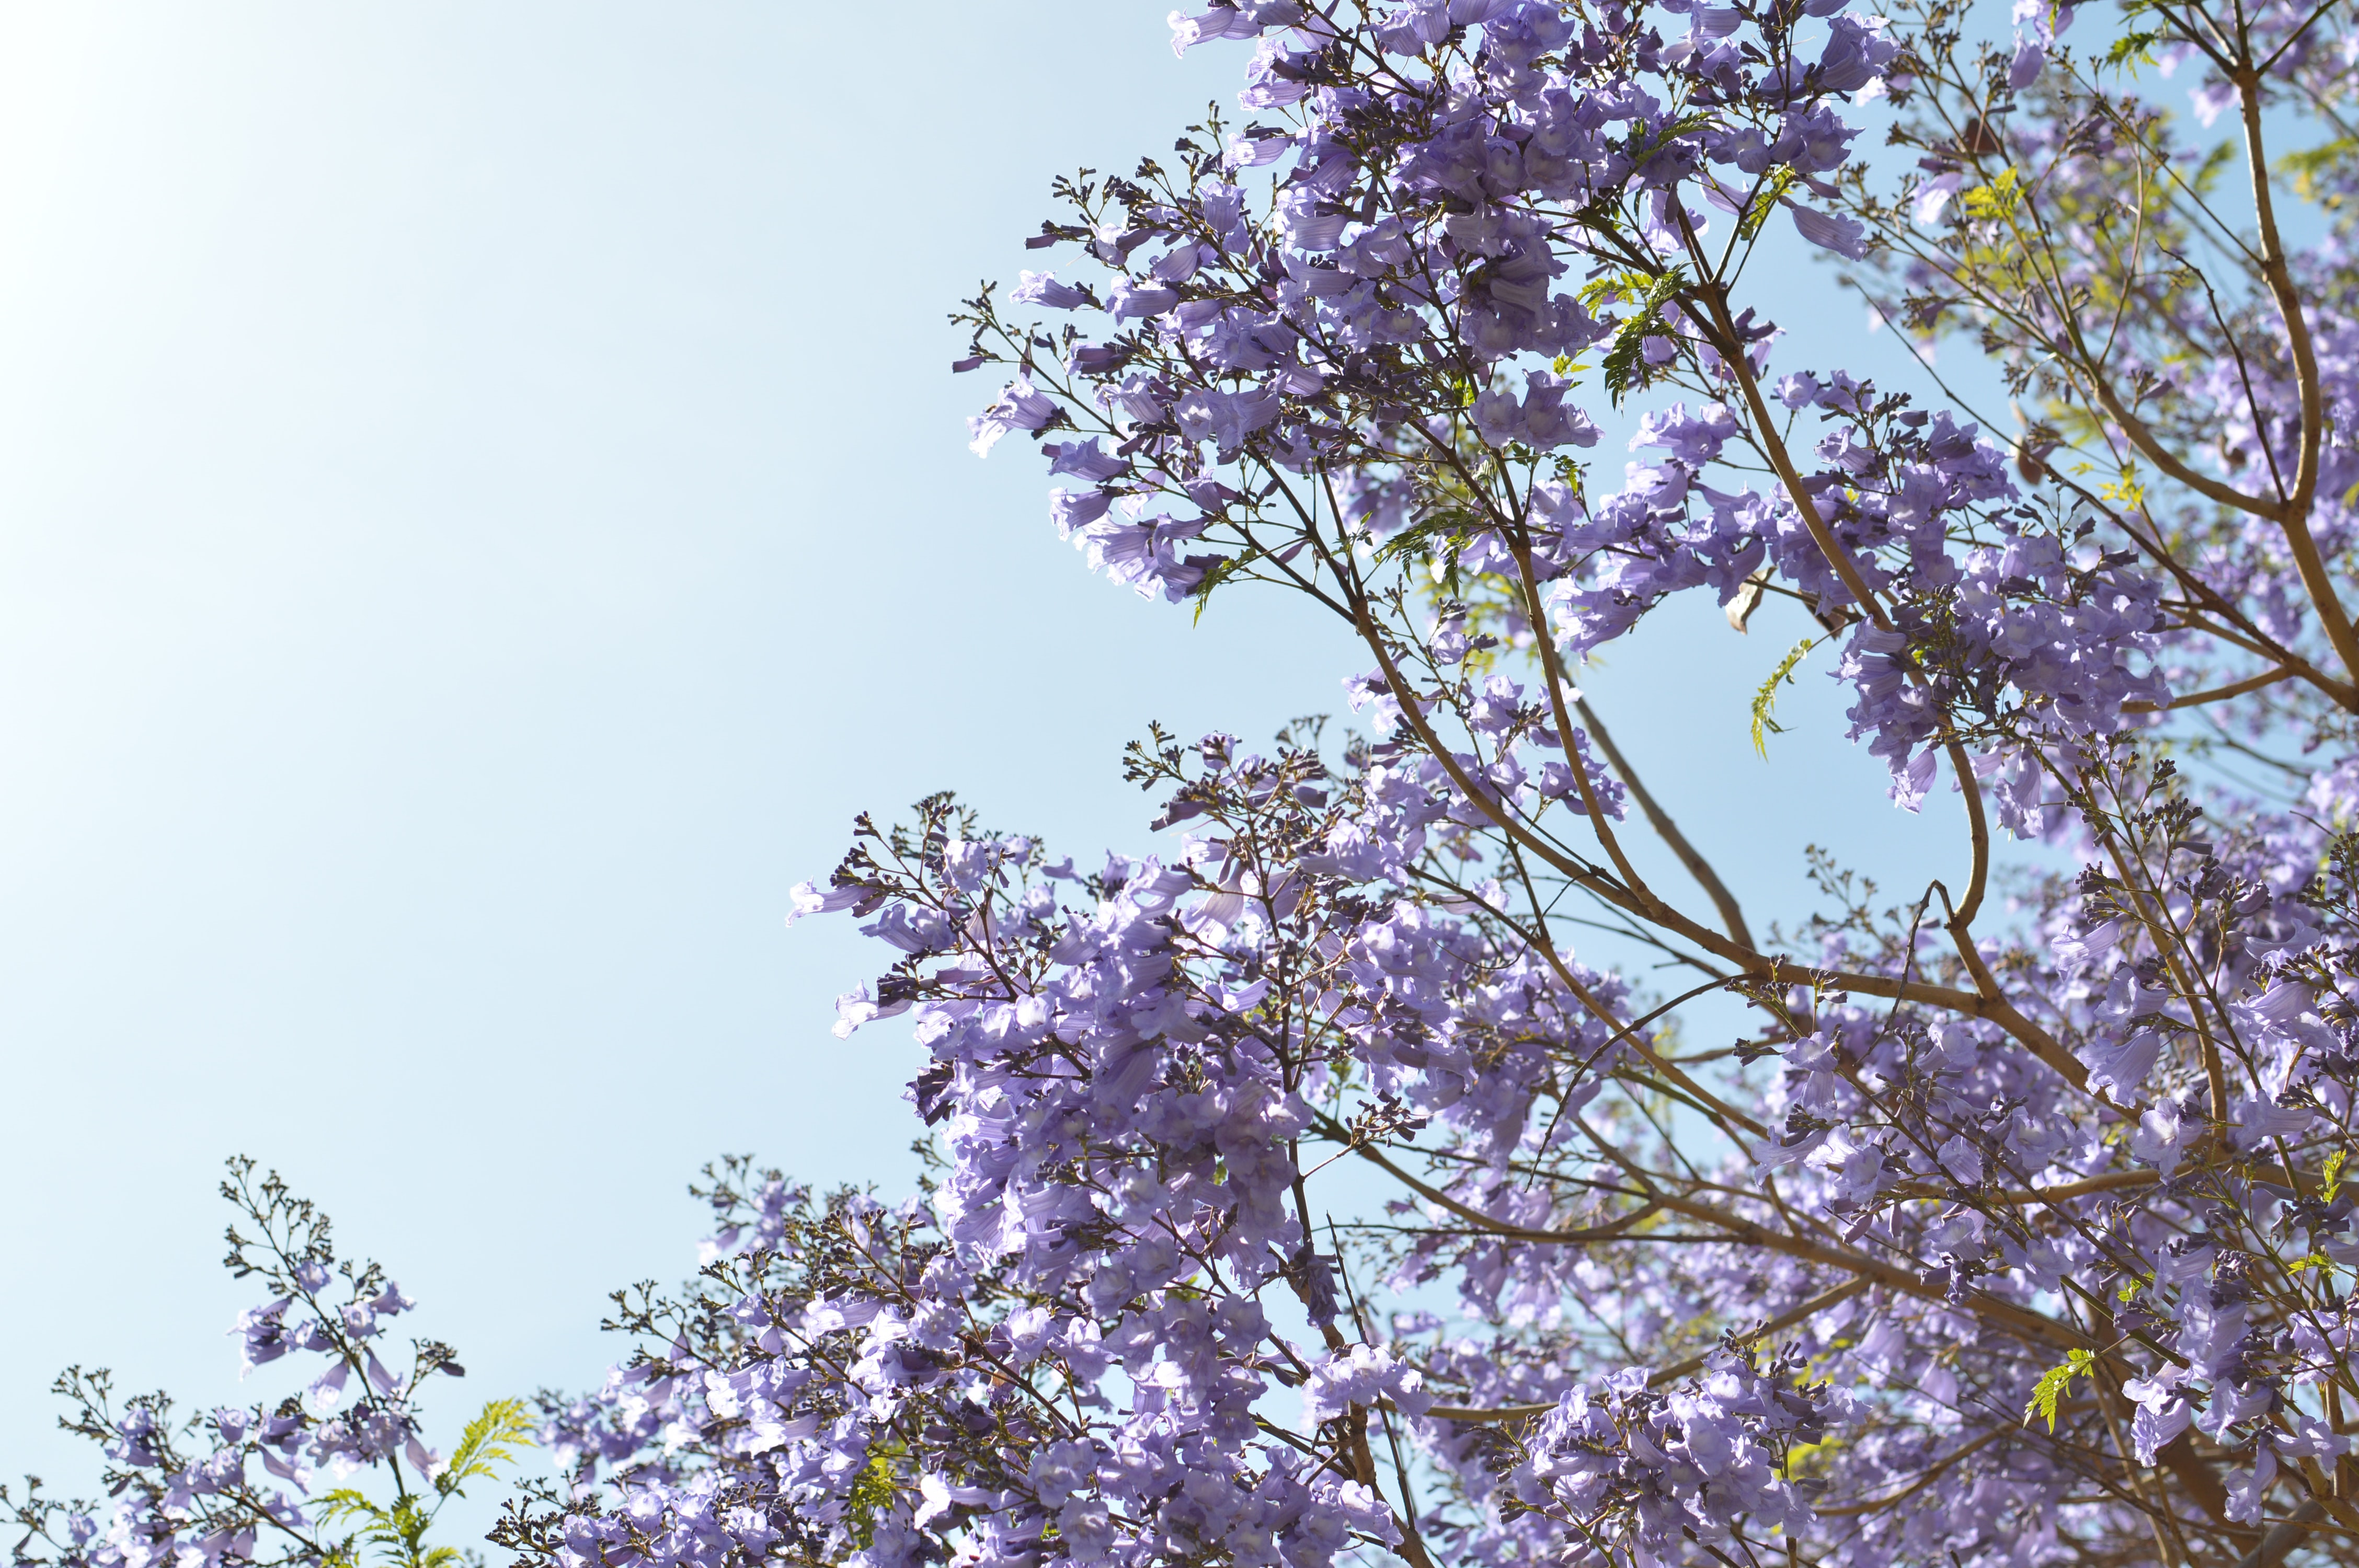 purple flowering tree low-angle photography at daytime